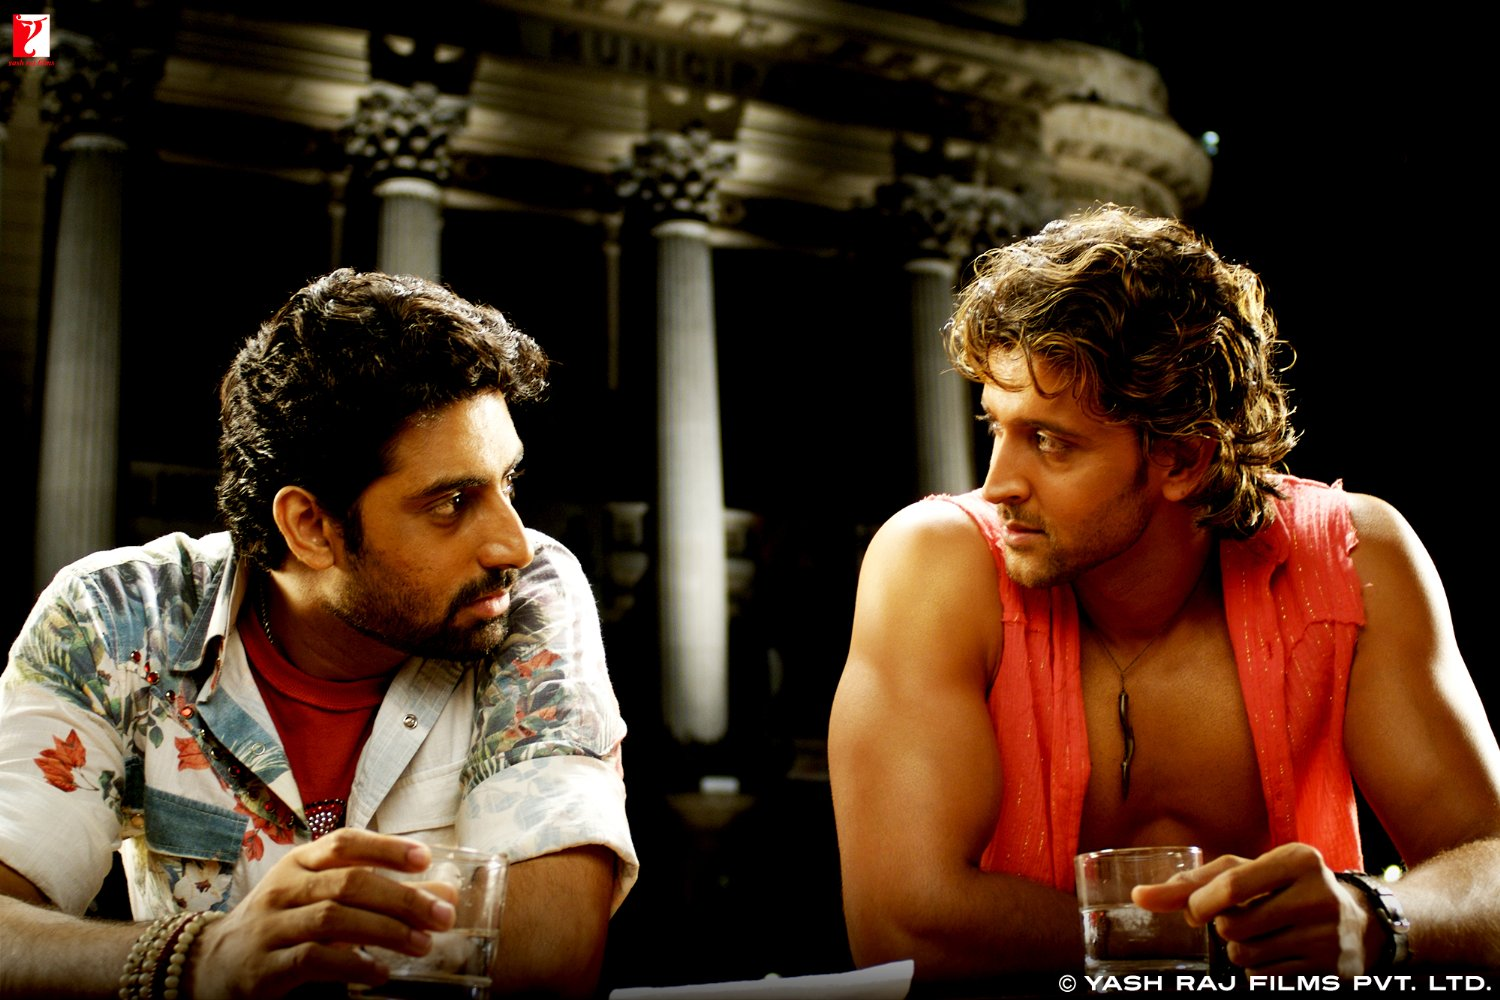 Dhoom 2 2006 Full Movie Watch in HD Online for Free - #1 ...